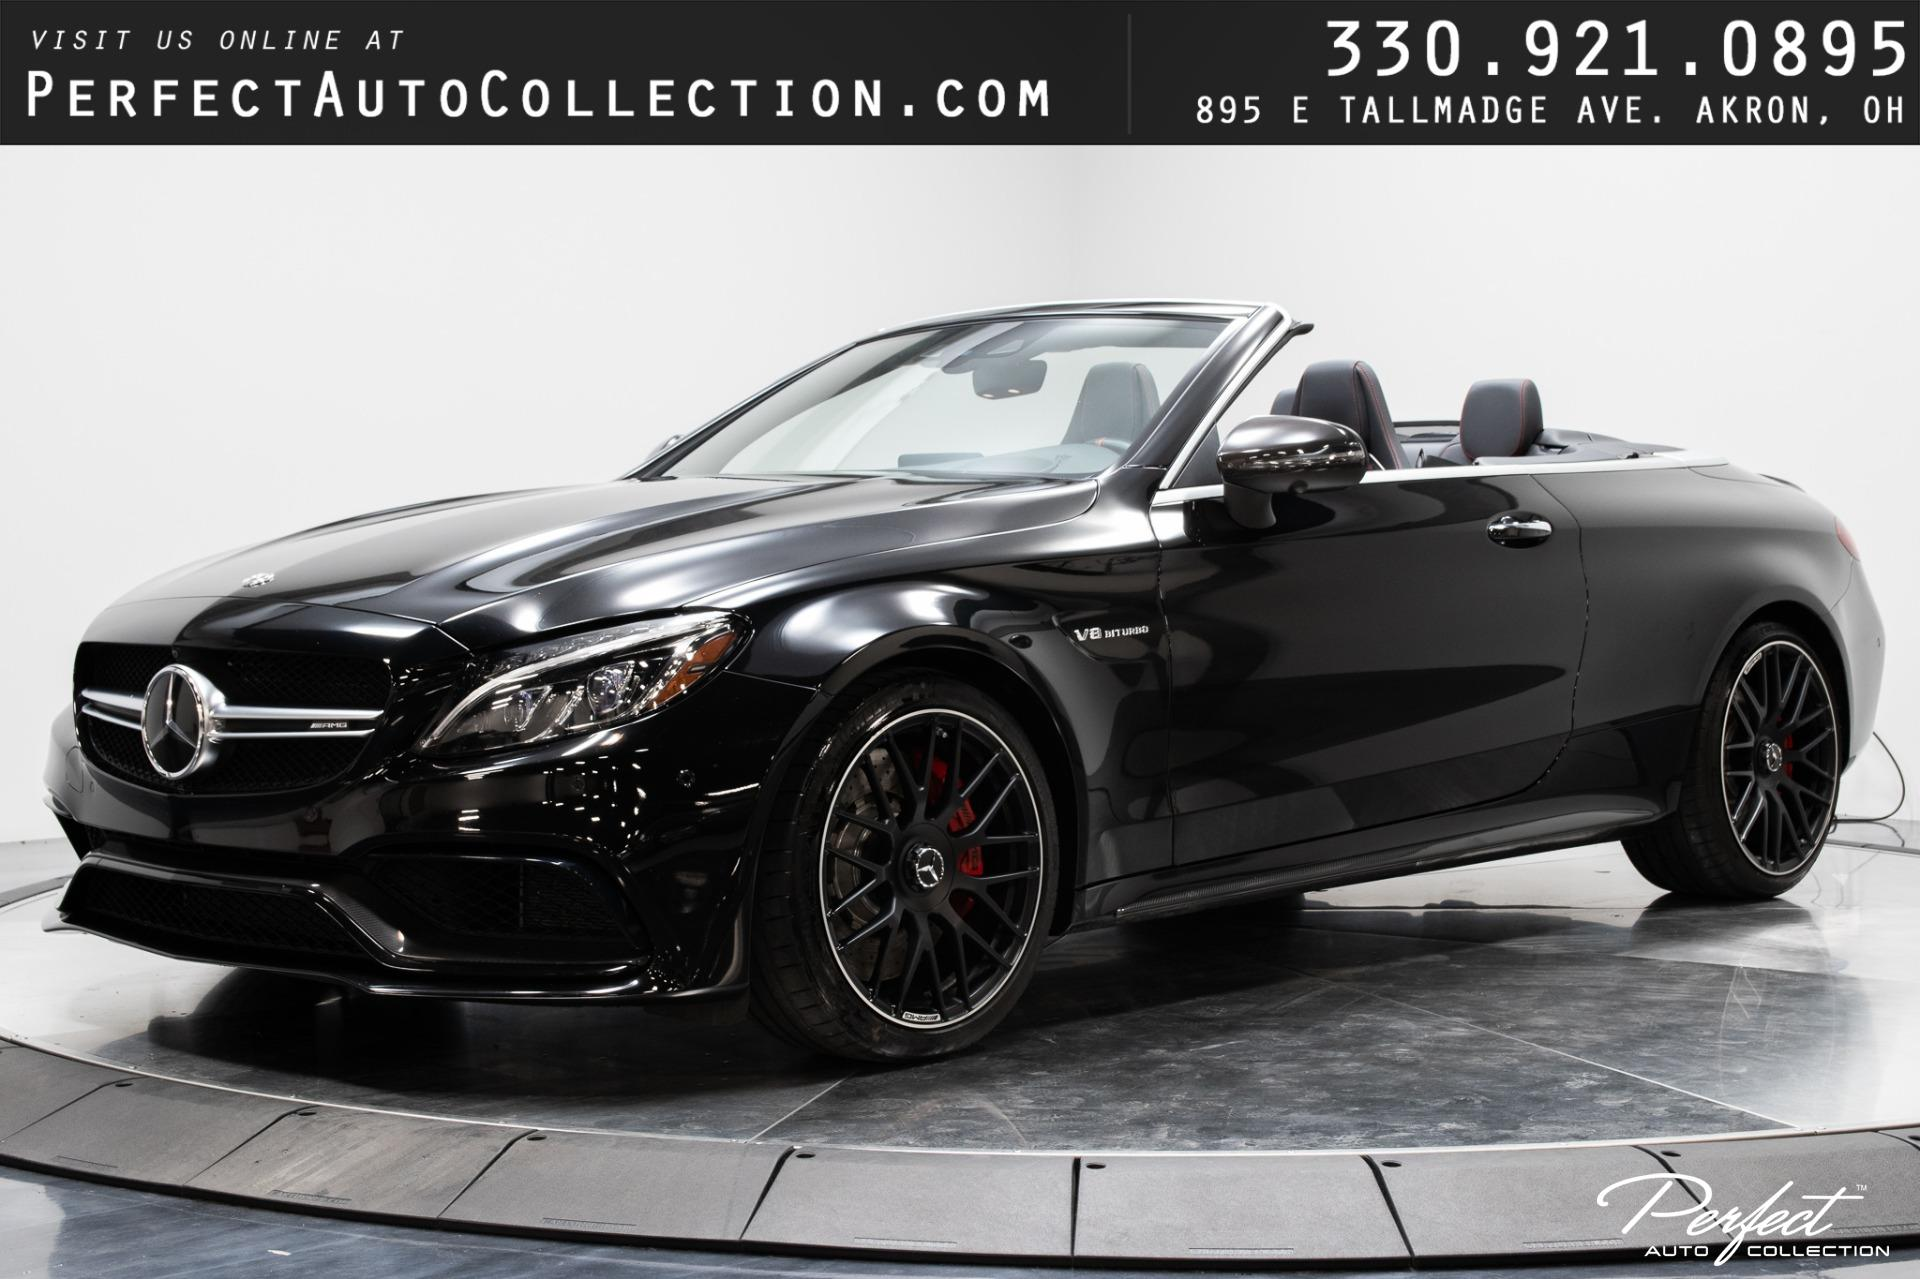 Used 2018 Mercedes-Benz C-Class AMG C 63 S Cabriolet for sale $69,393 at Perfect Auto Collection in Akron OH 44310 1